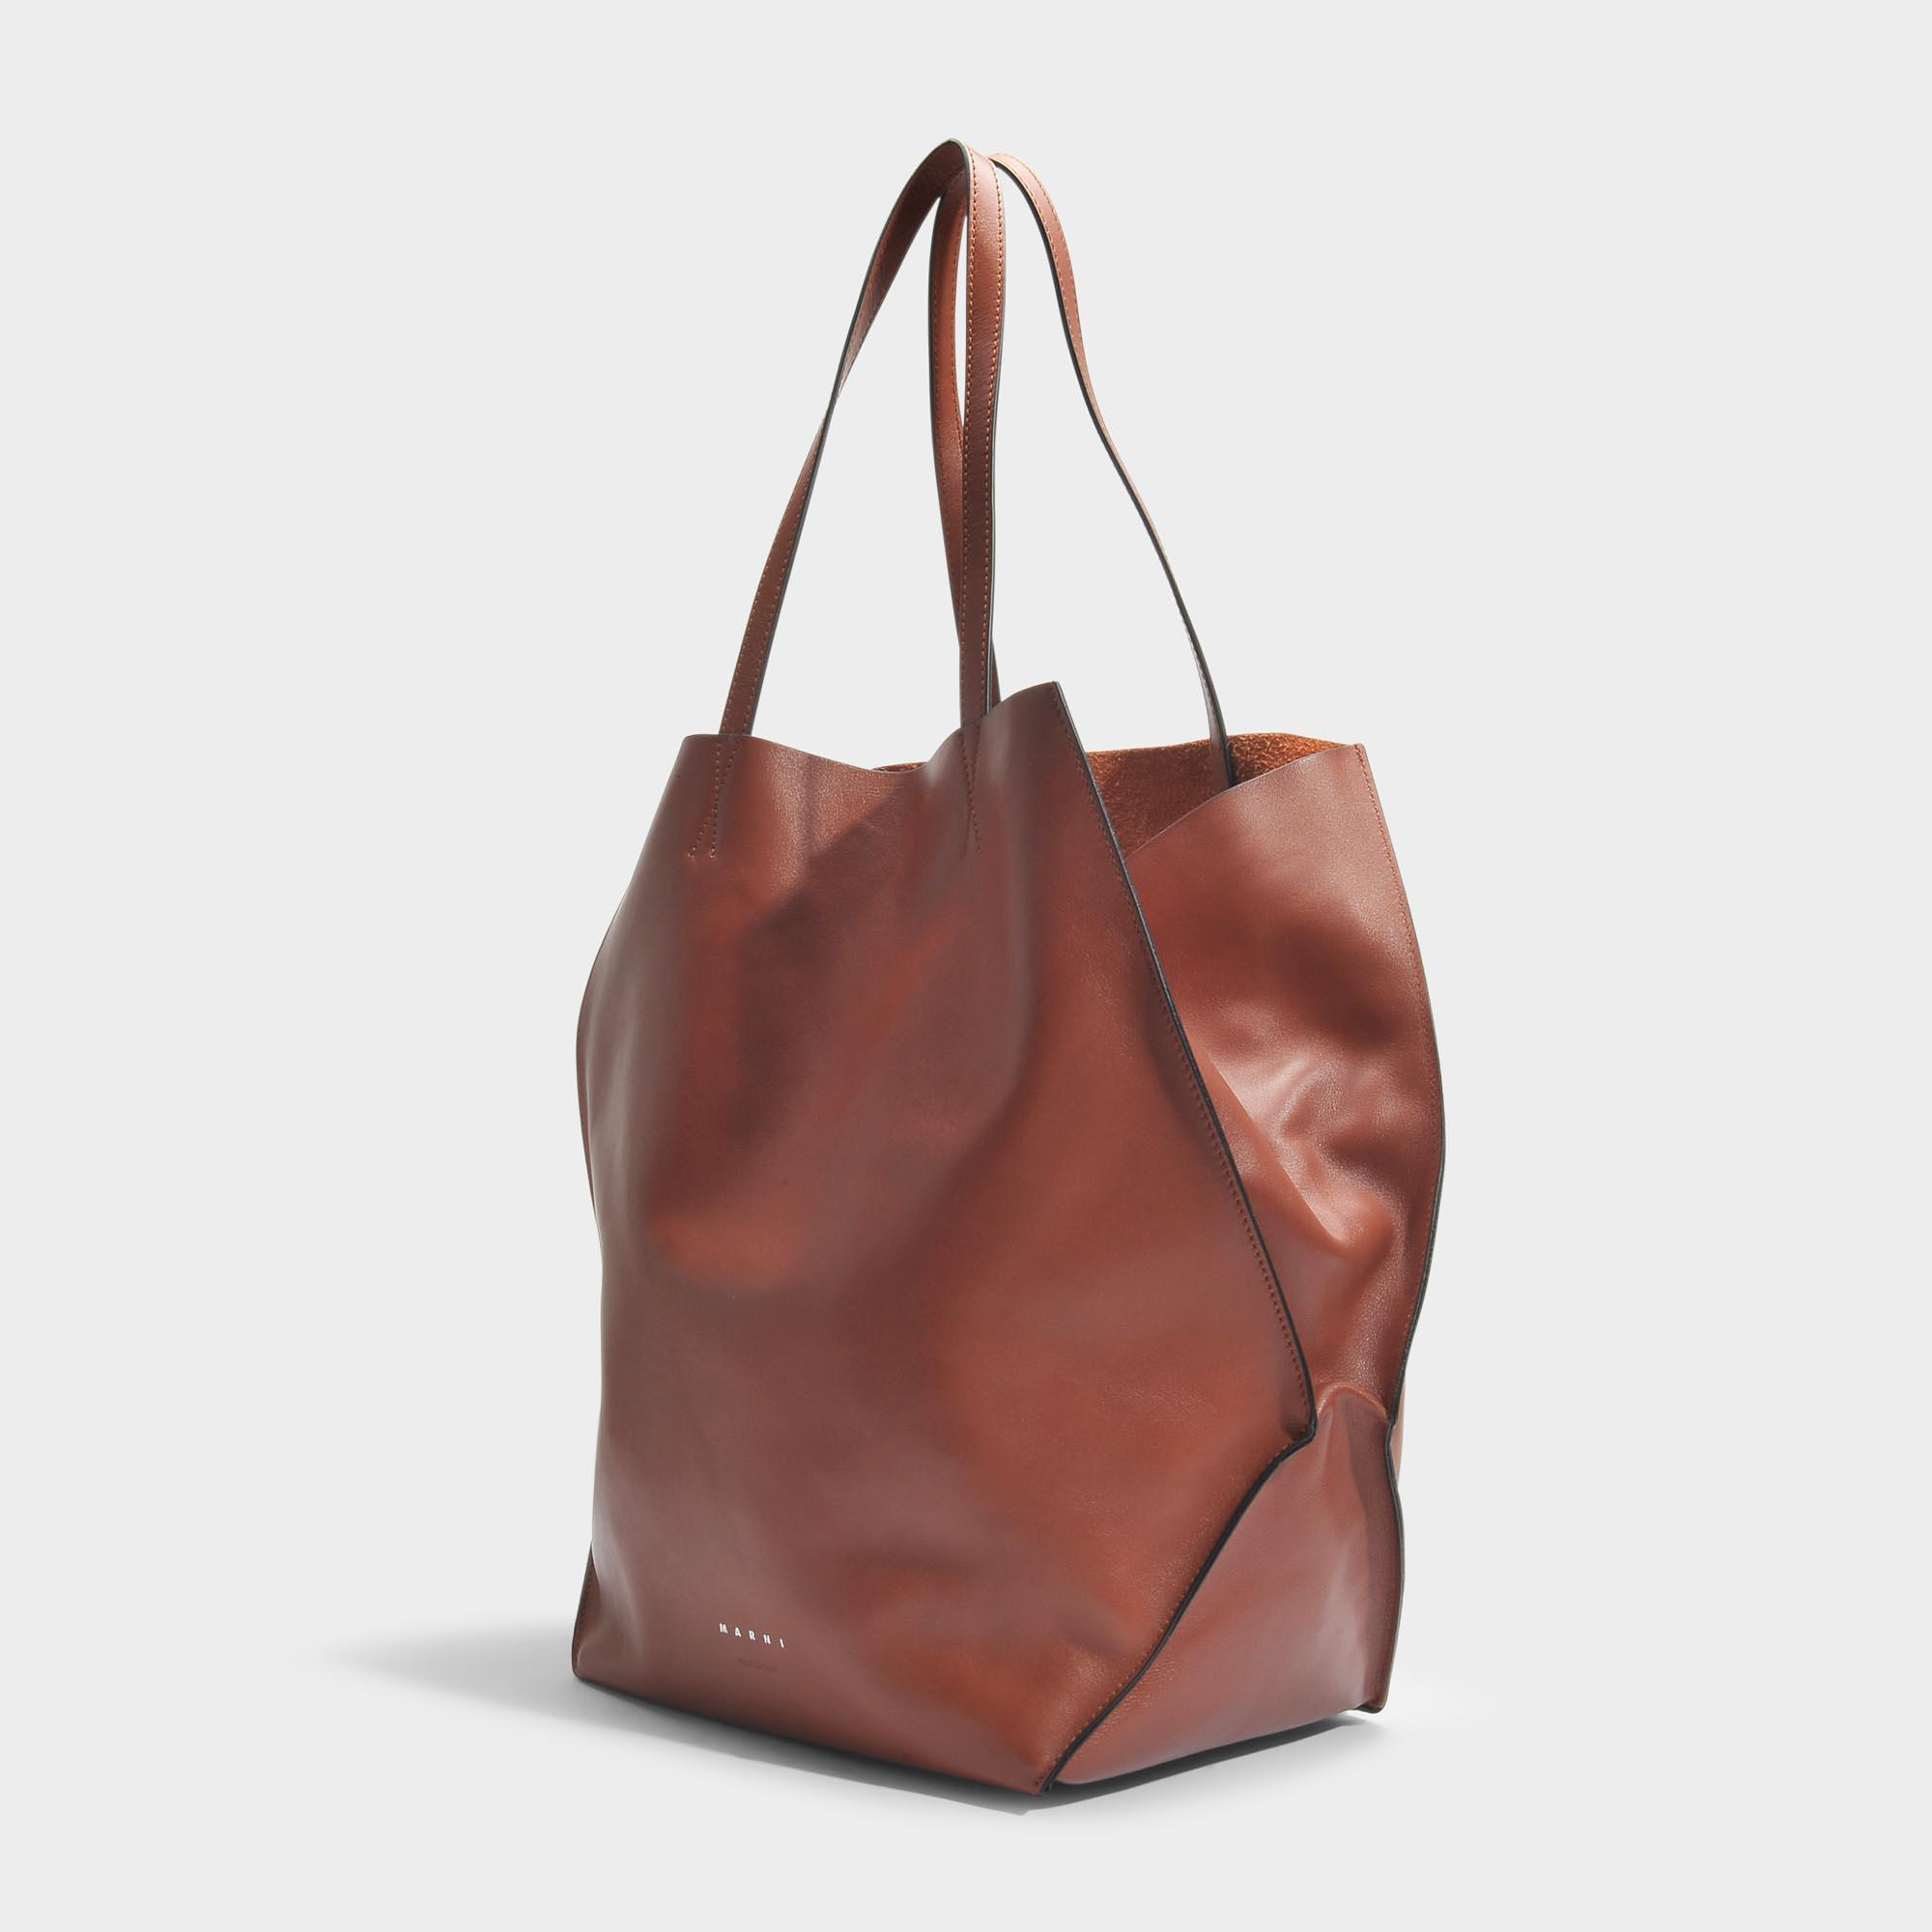 Tangram Bag in Rock Calf Marni Jh2fA